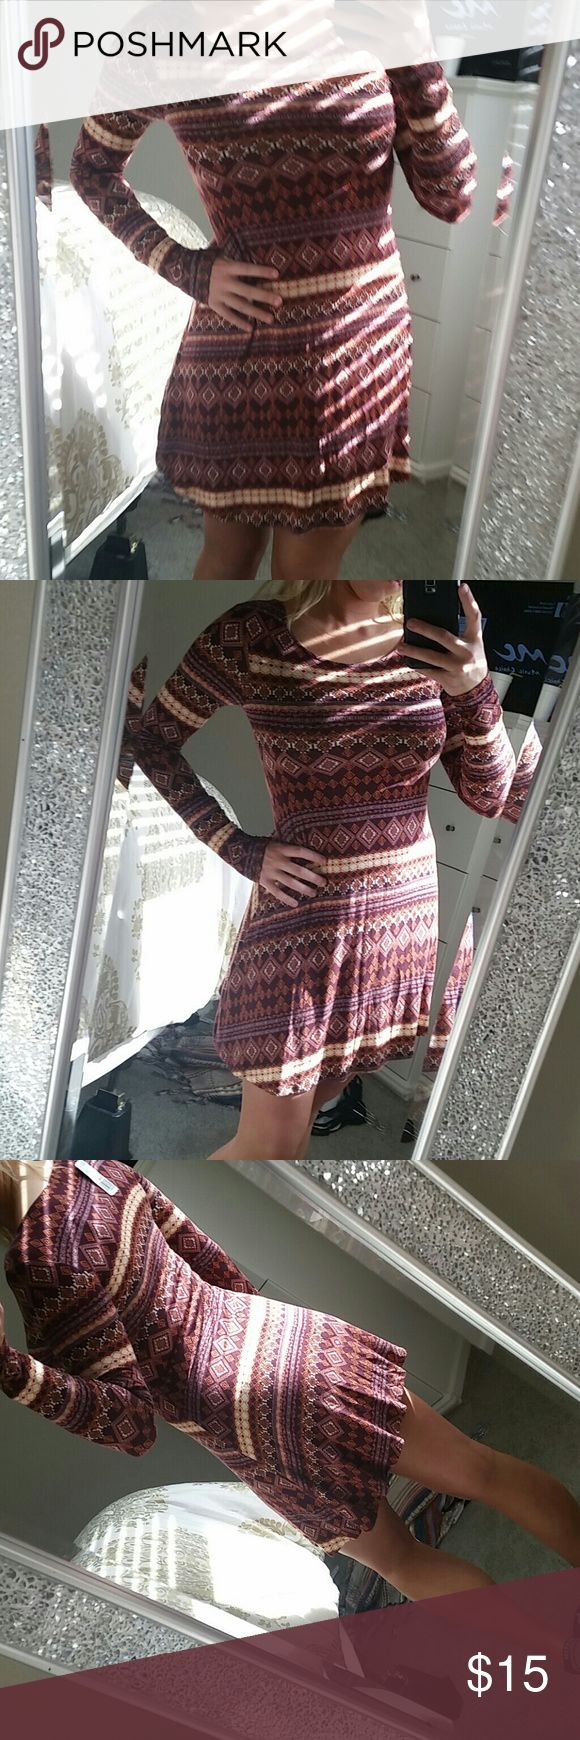 NWT Beautiful Aztec Print Dress Cute little mini dress with long sleeves new with tags Forever 21 Dresses Long Sleeve